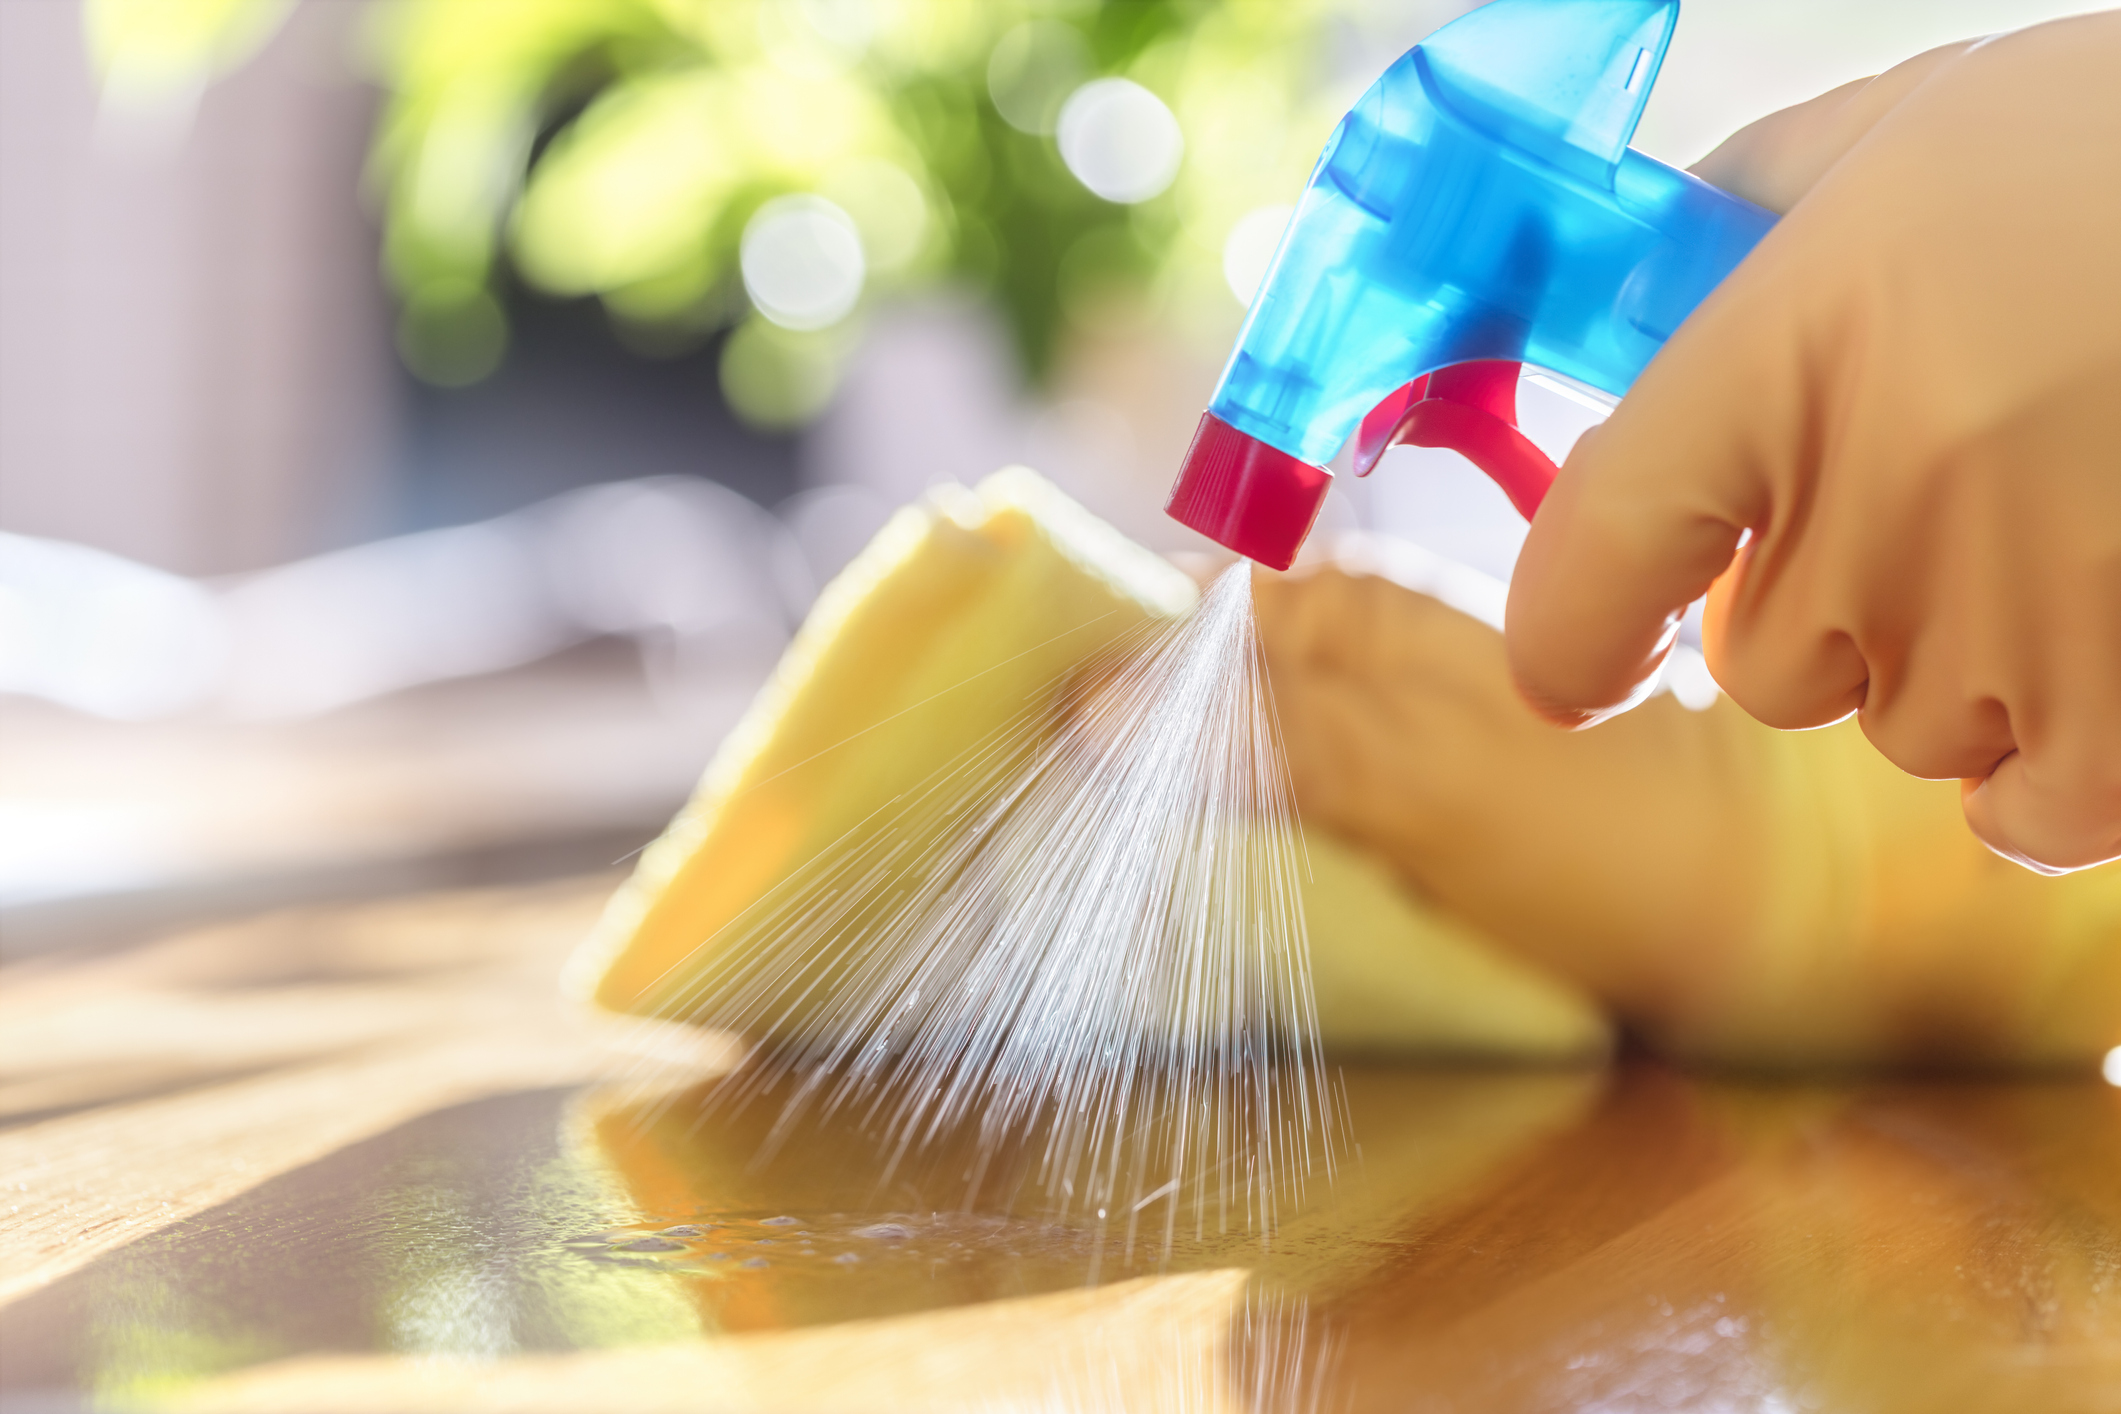 How to Clean and Disinfect Your Home Against COVID-19